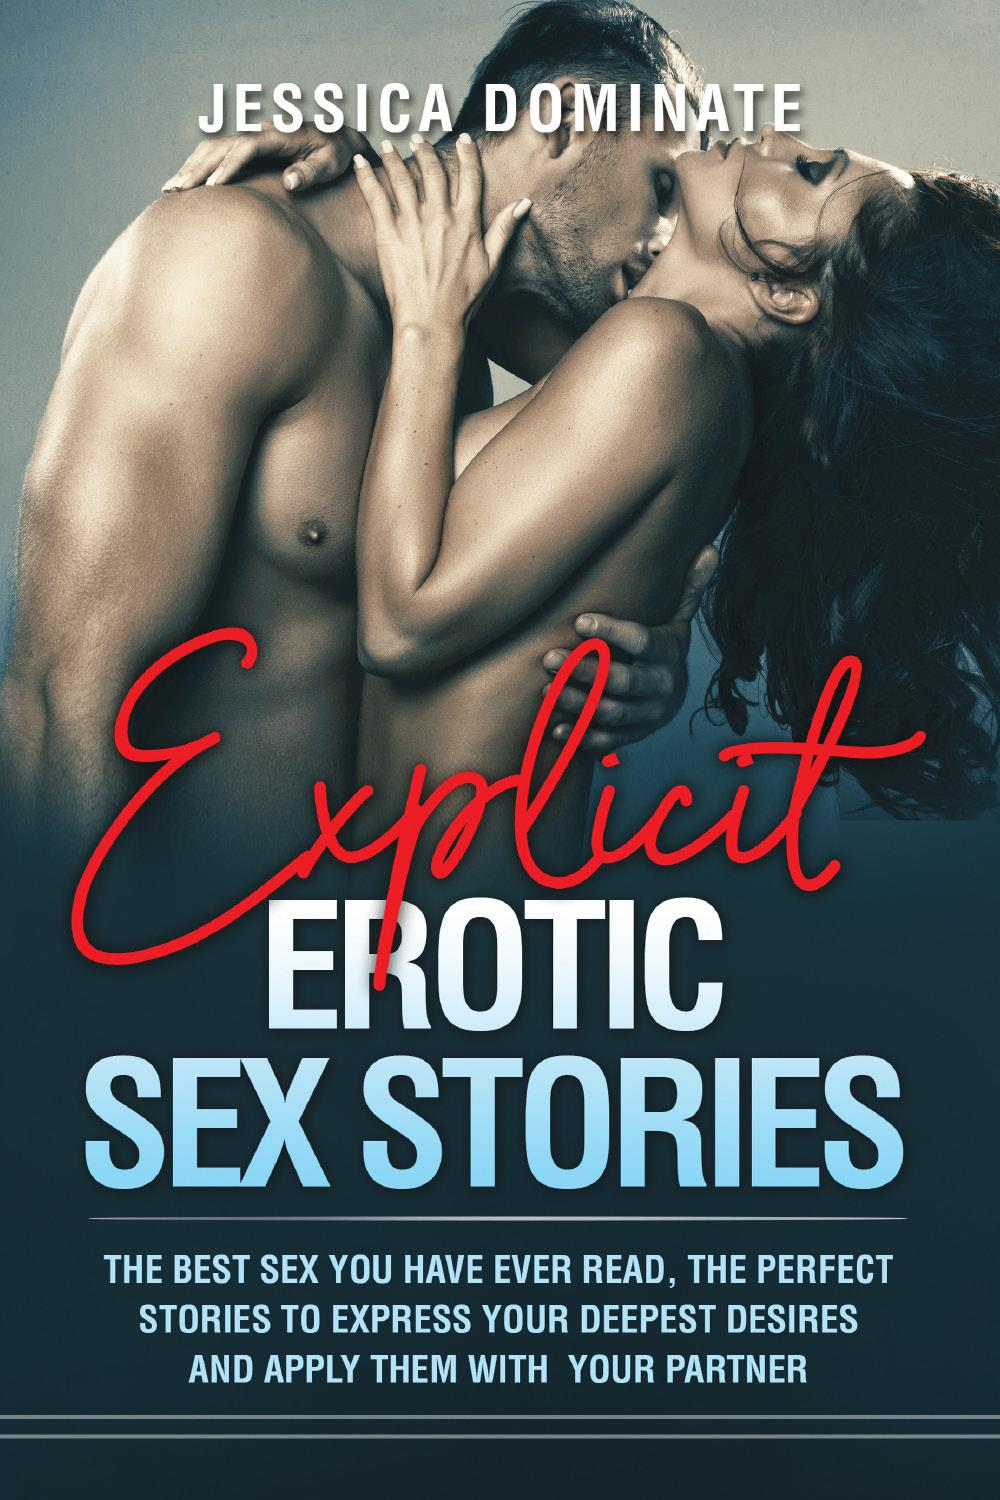 Explicit Erotic Sex Stories. The best sex you have ever read, the perfect stories to express your deepest desires and apply them with your partner